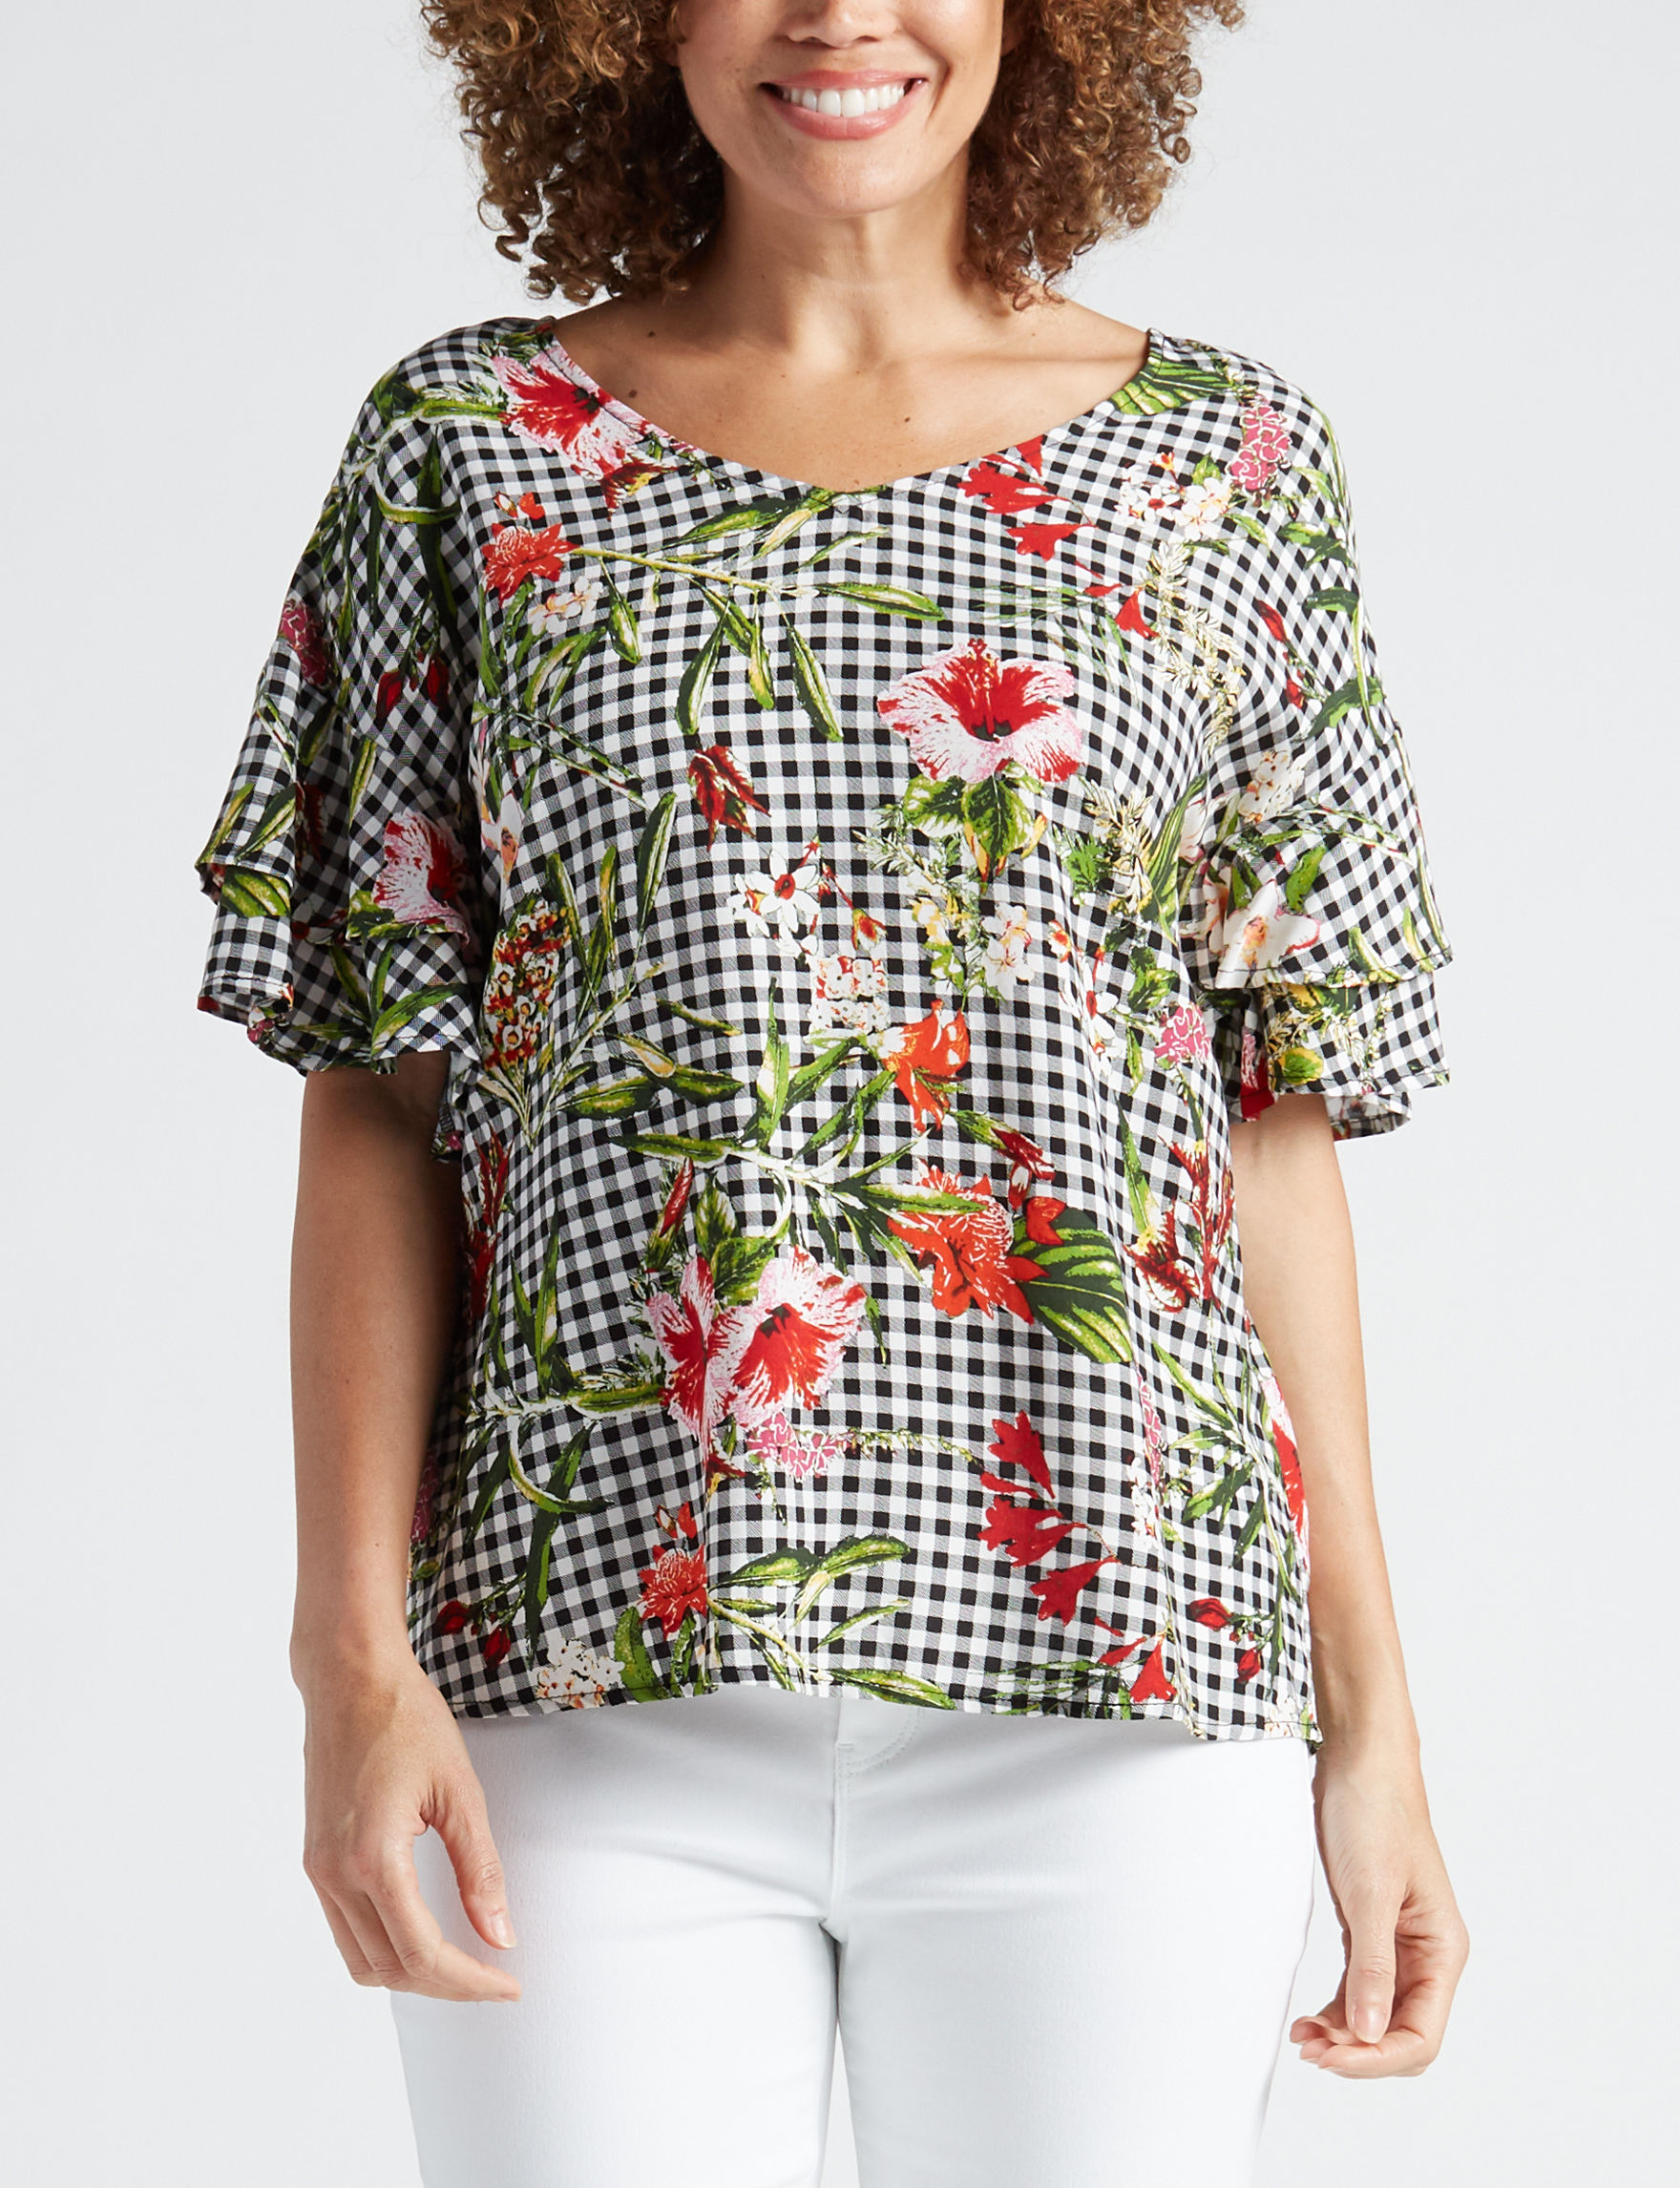 Signature Studio Gingham / Floral Shirts & Blouses